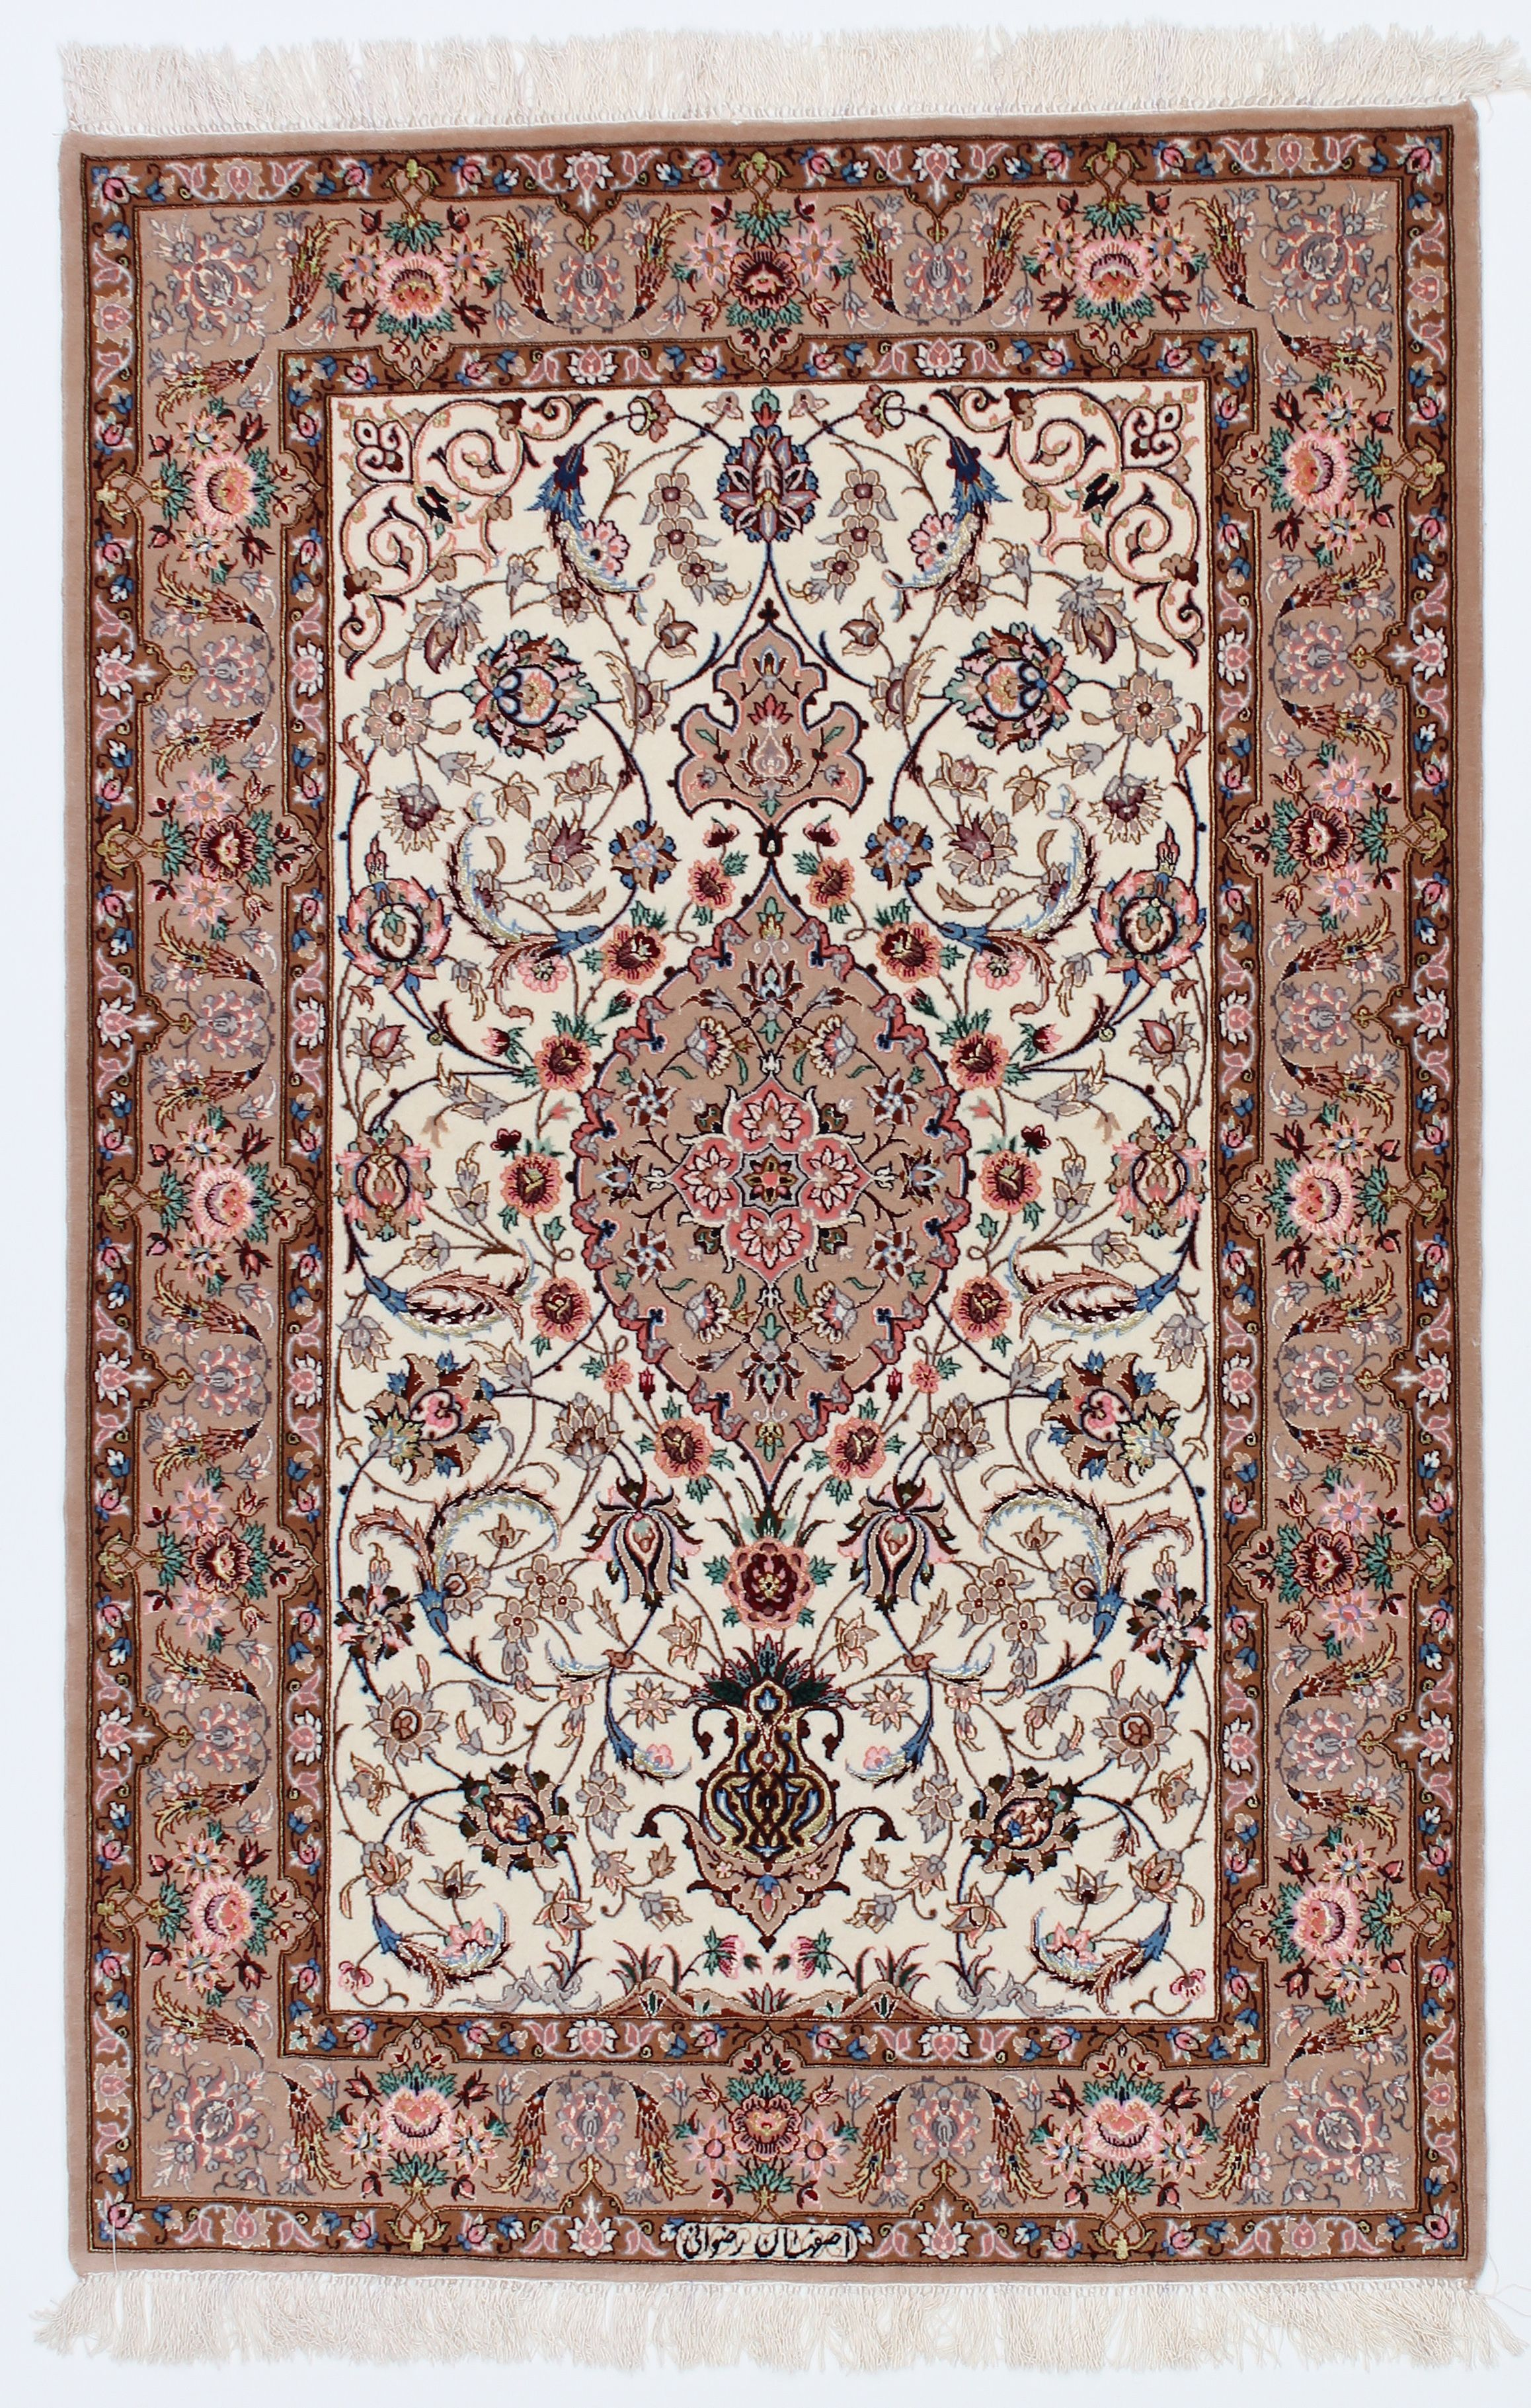 Teppich Isfahan isfahan teppich 162x107 lionel esfahan rugs